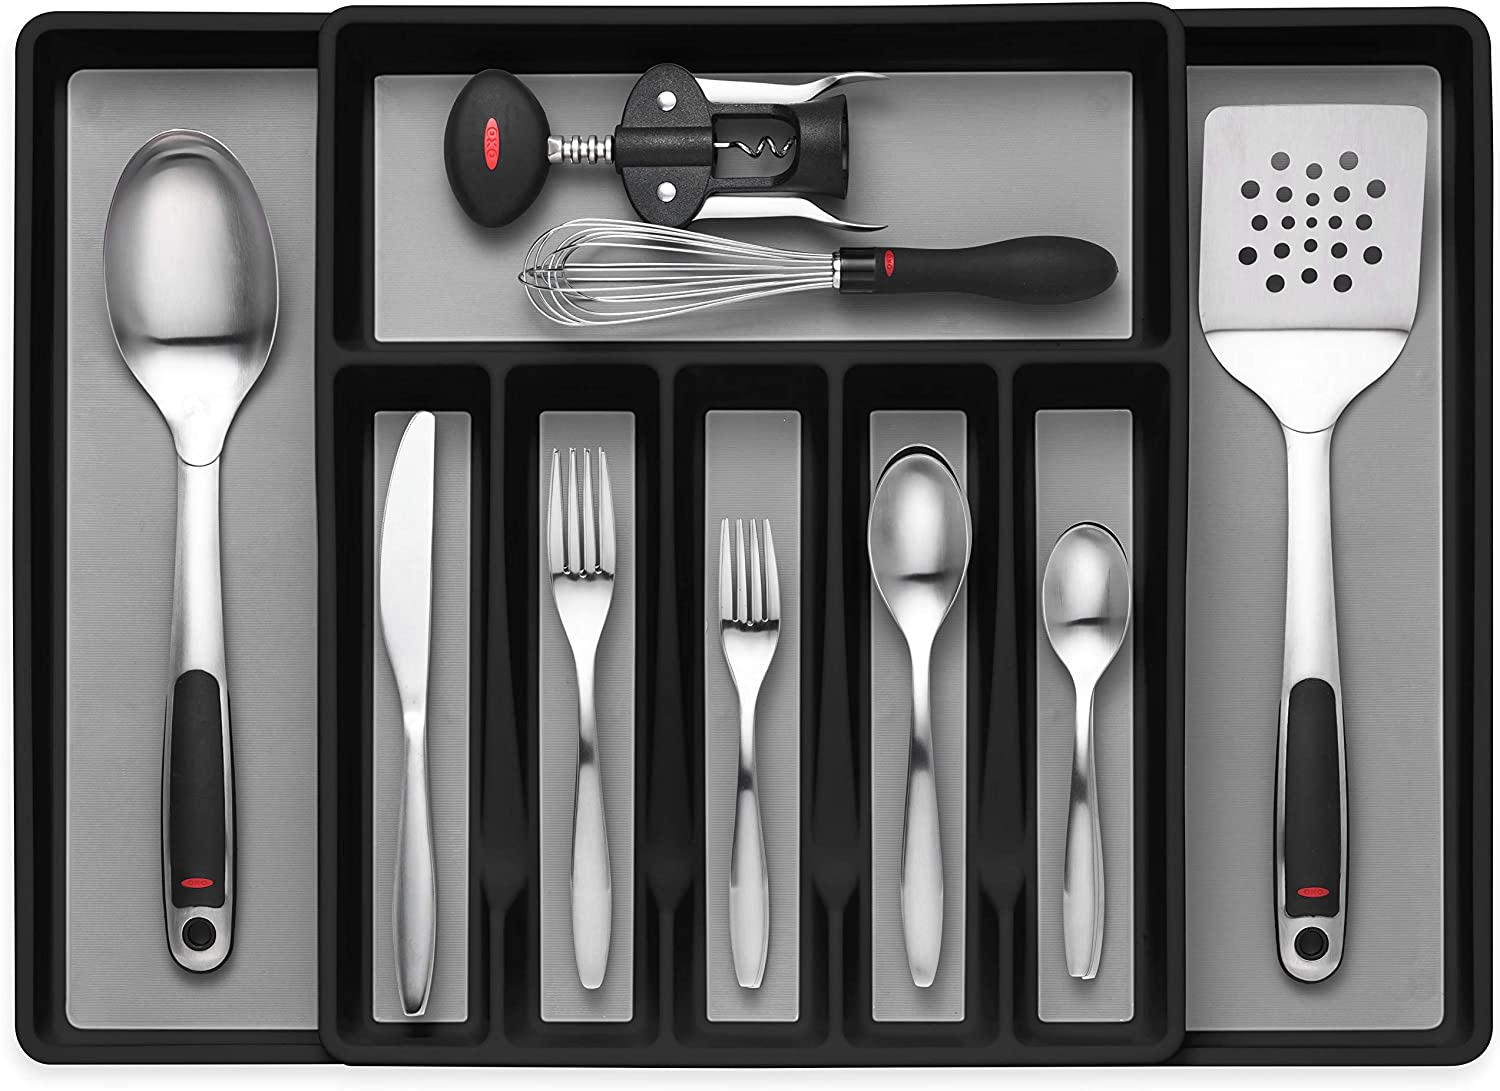 Expandable Cutlery Drawer Organizer, Flatware Drawer Tray for Silverware, Serving Utensils, Multi-Purpose Storage for Kitchen, Office, Bathroom Supplies -